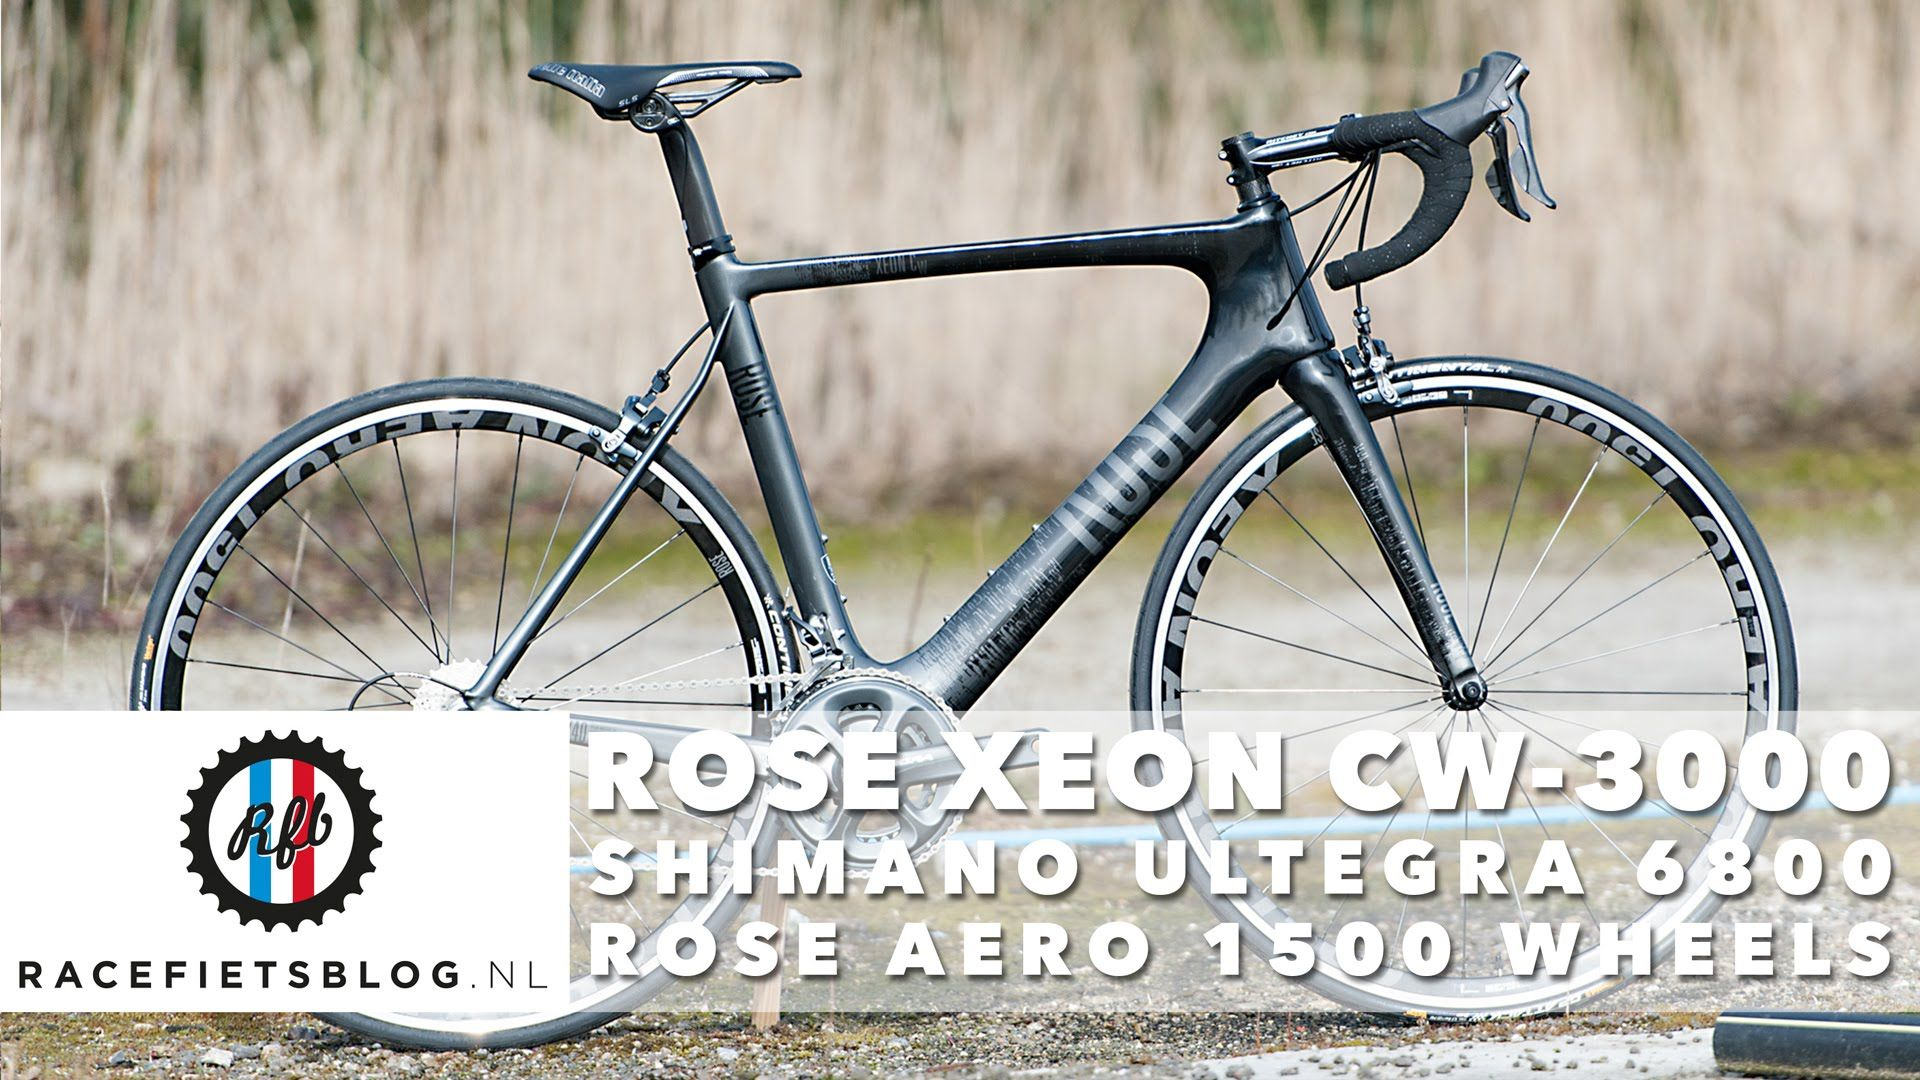 Rose Xeon Cw 3000 Aero Road Bike See The Full Review On